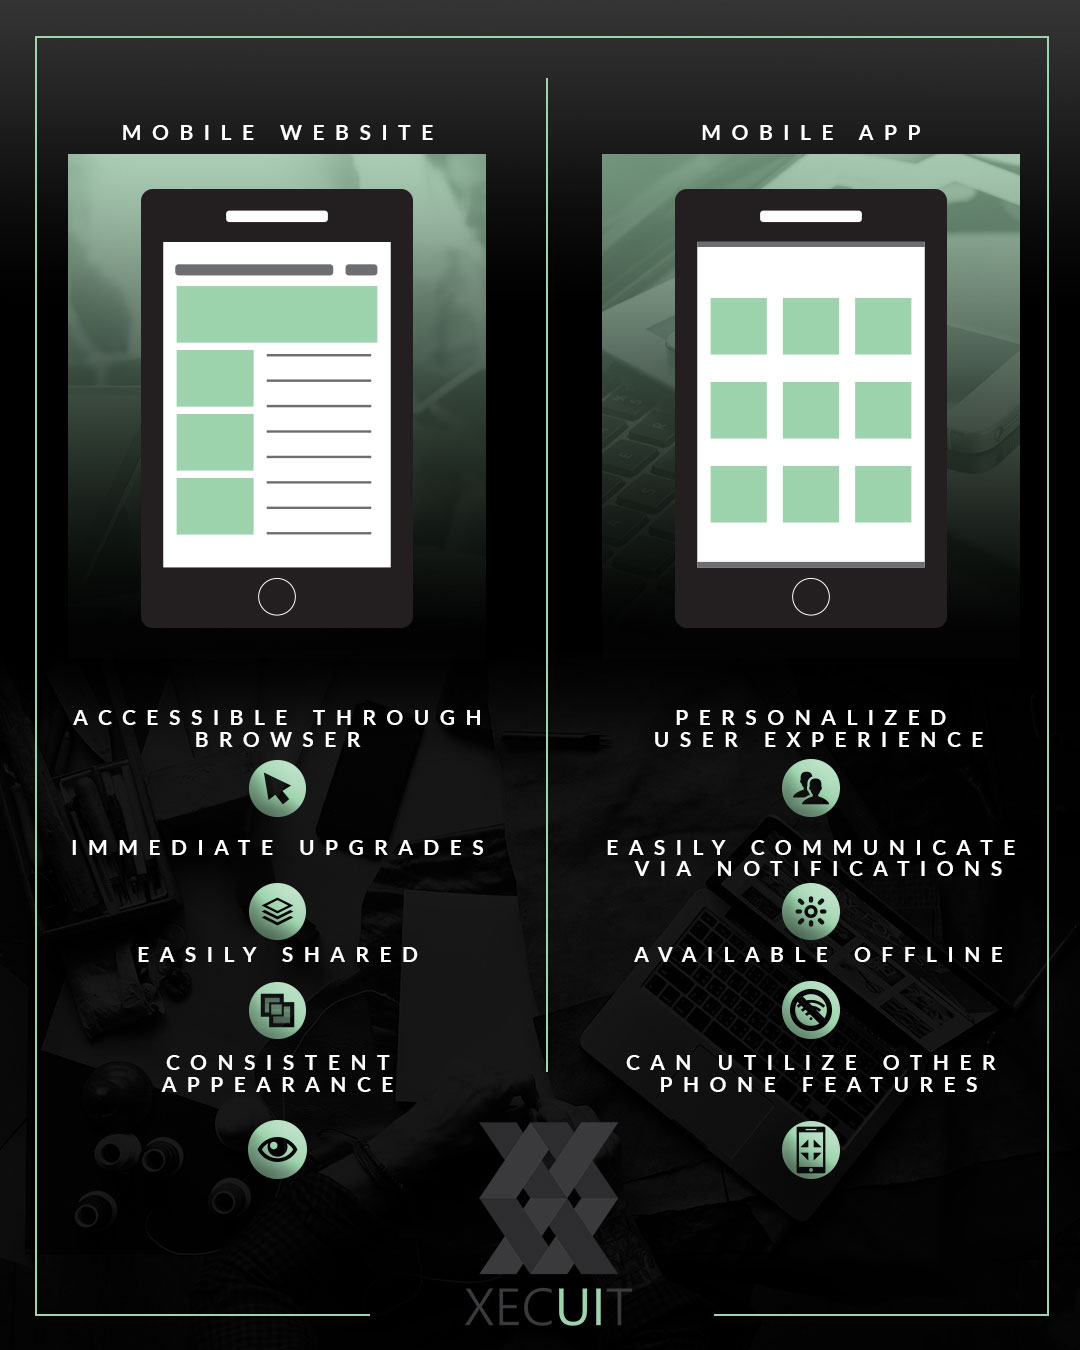 App vs Mobile Site Infographic